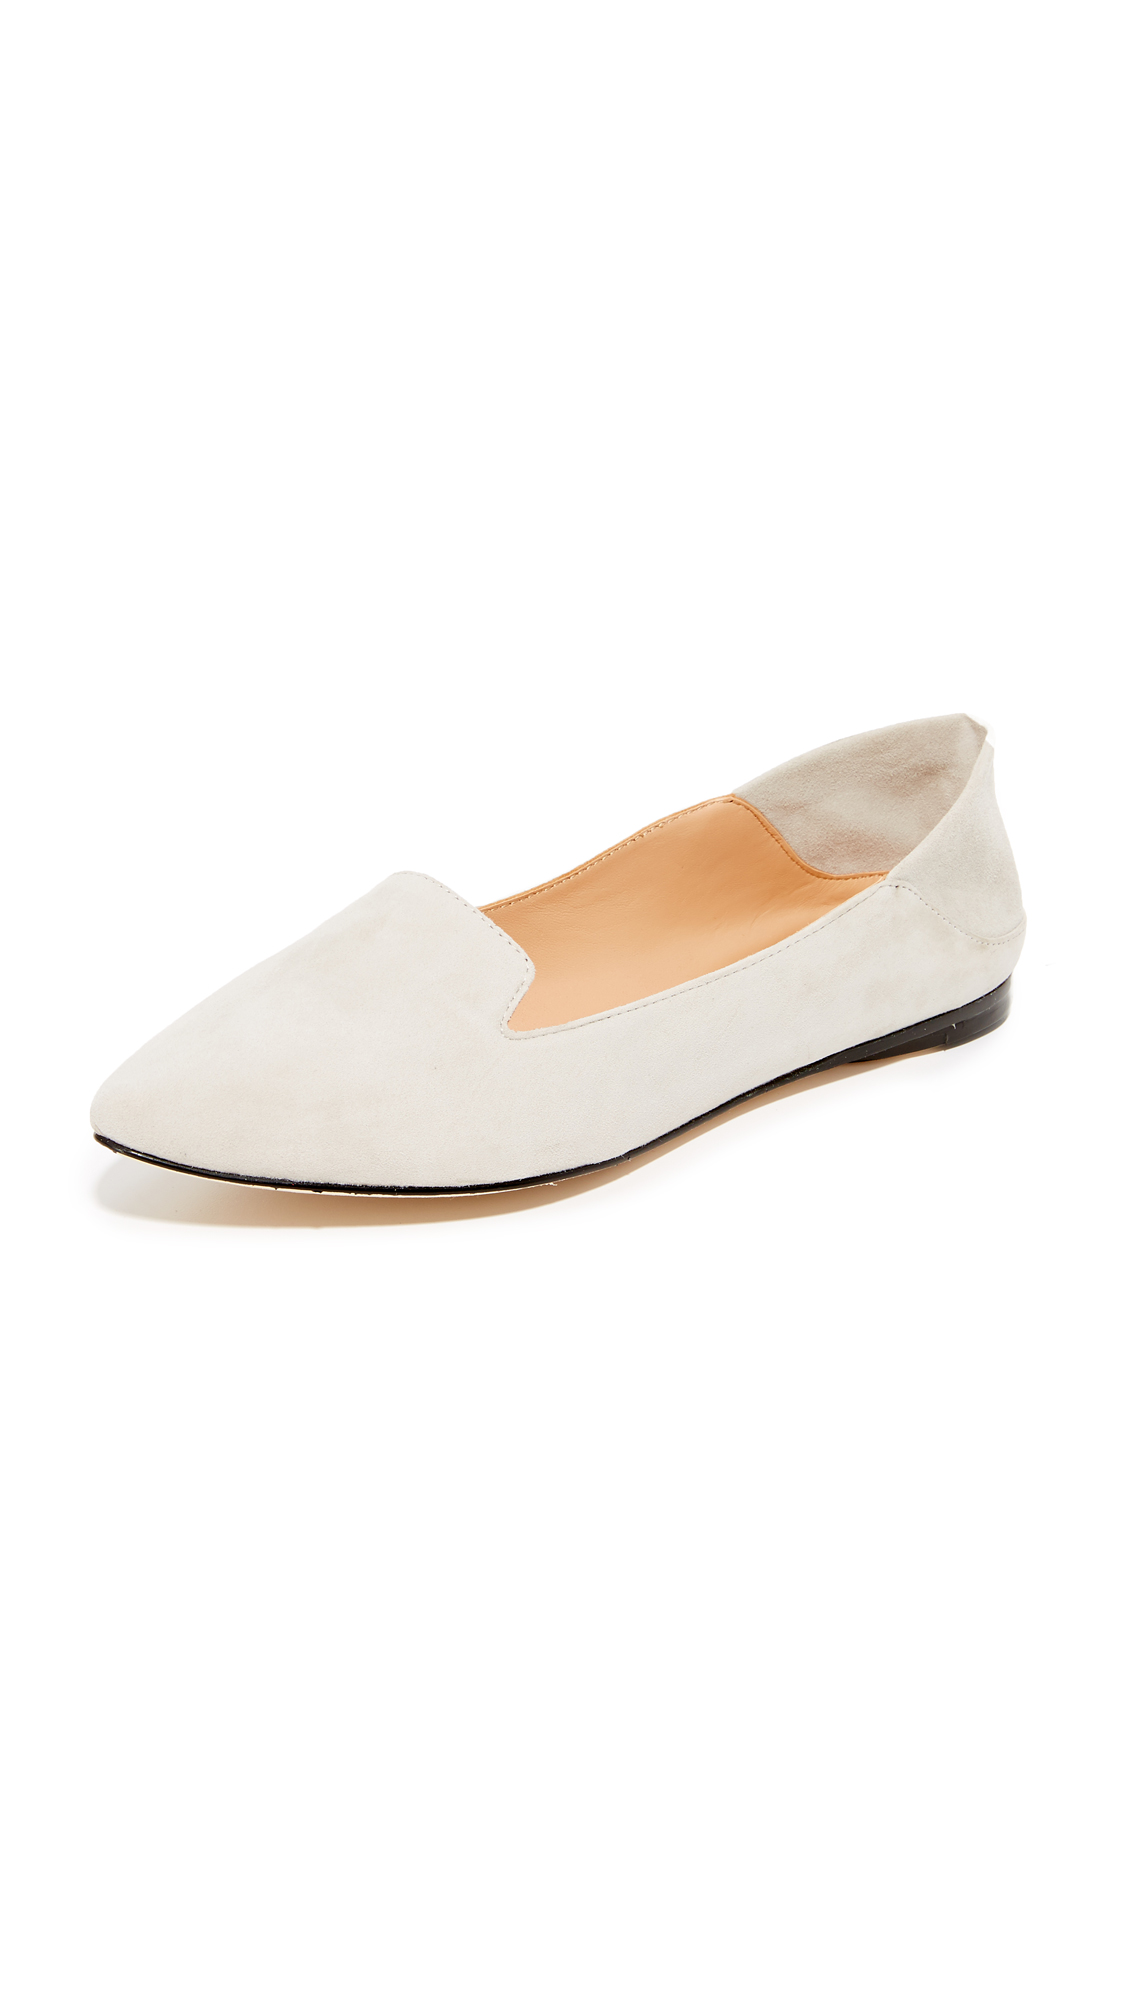 Photo of Sigerson Morrison Valentine Fold Down Flats Taupe - Sigerson Morrison online